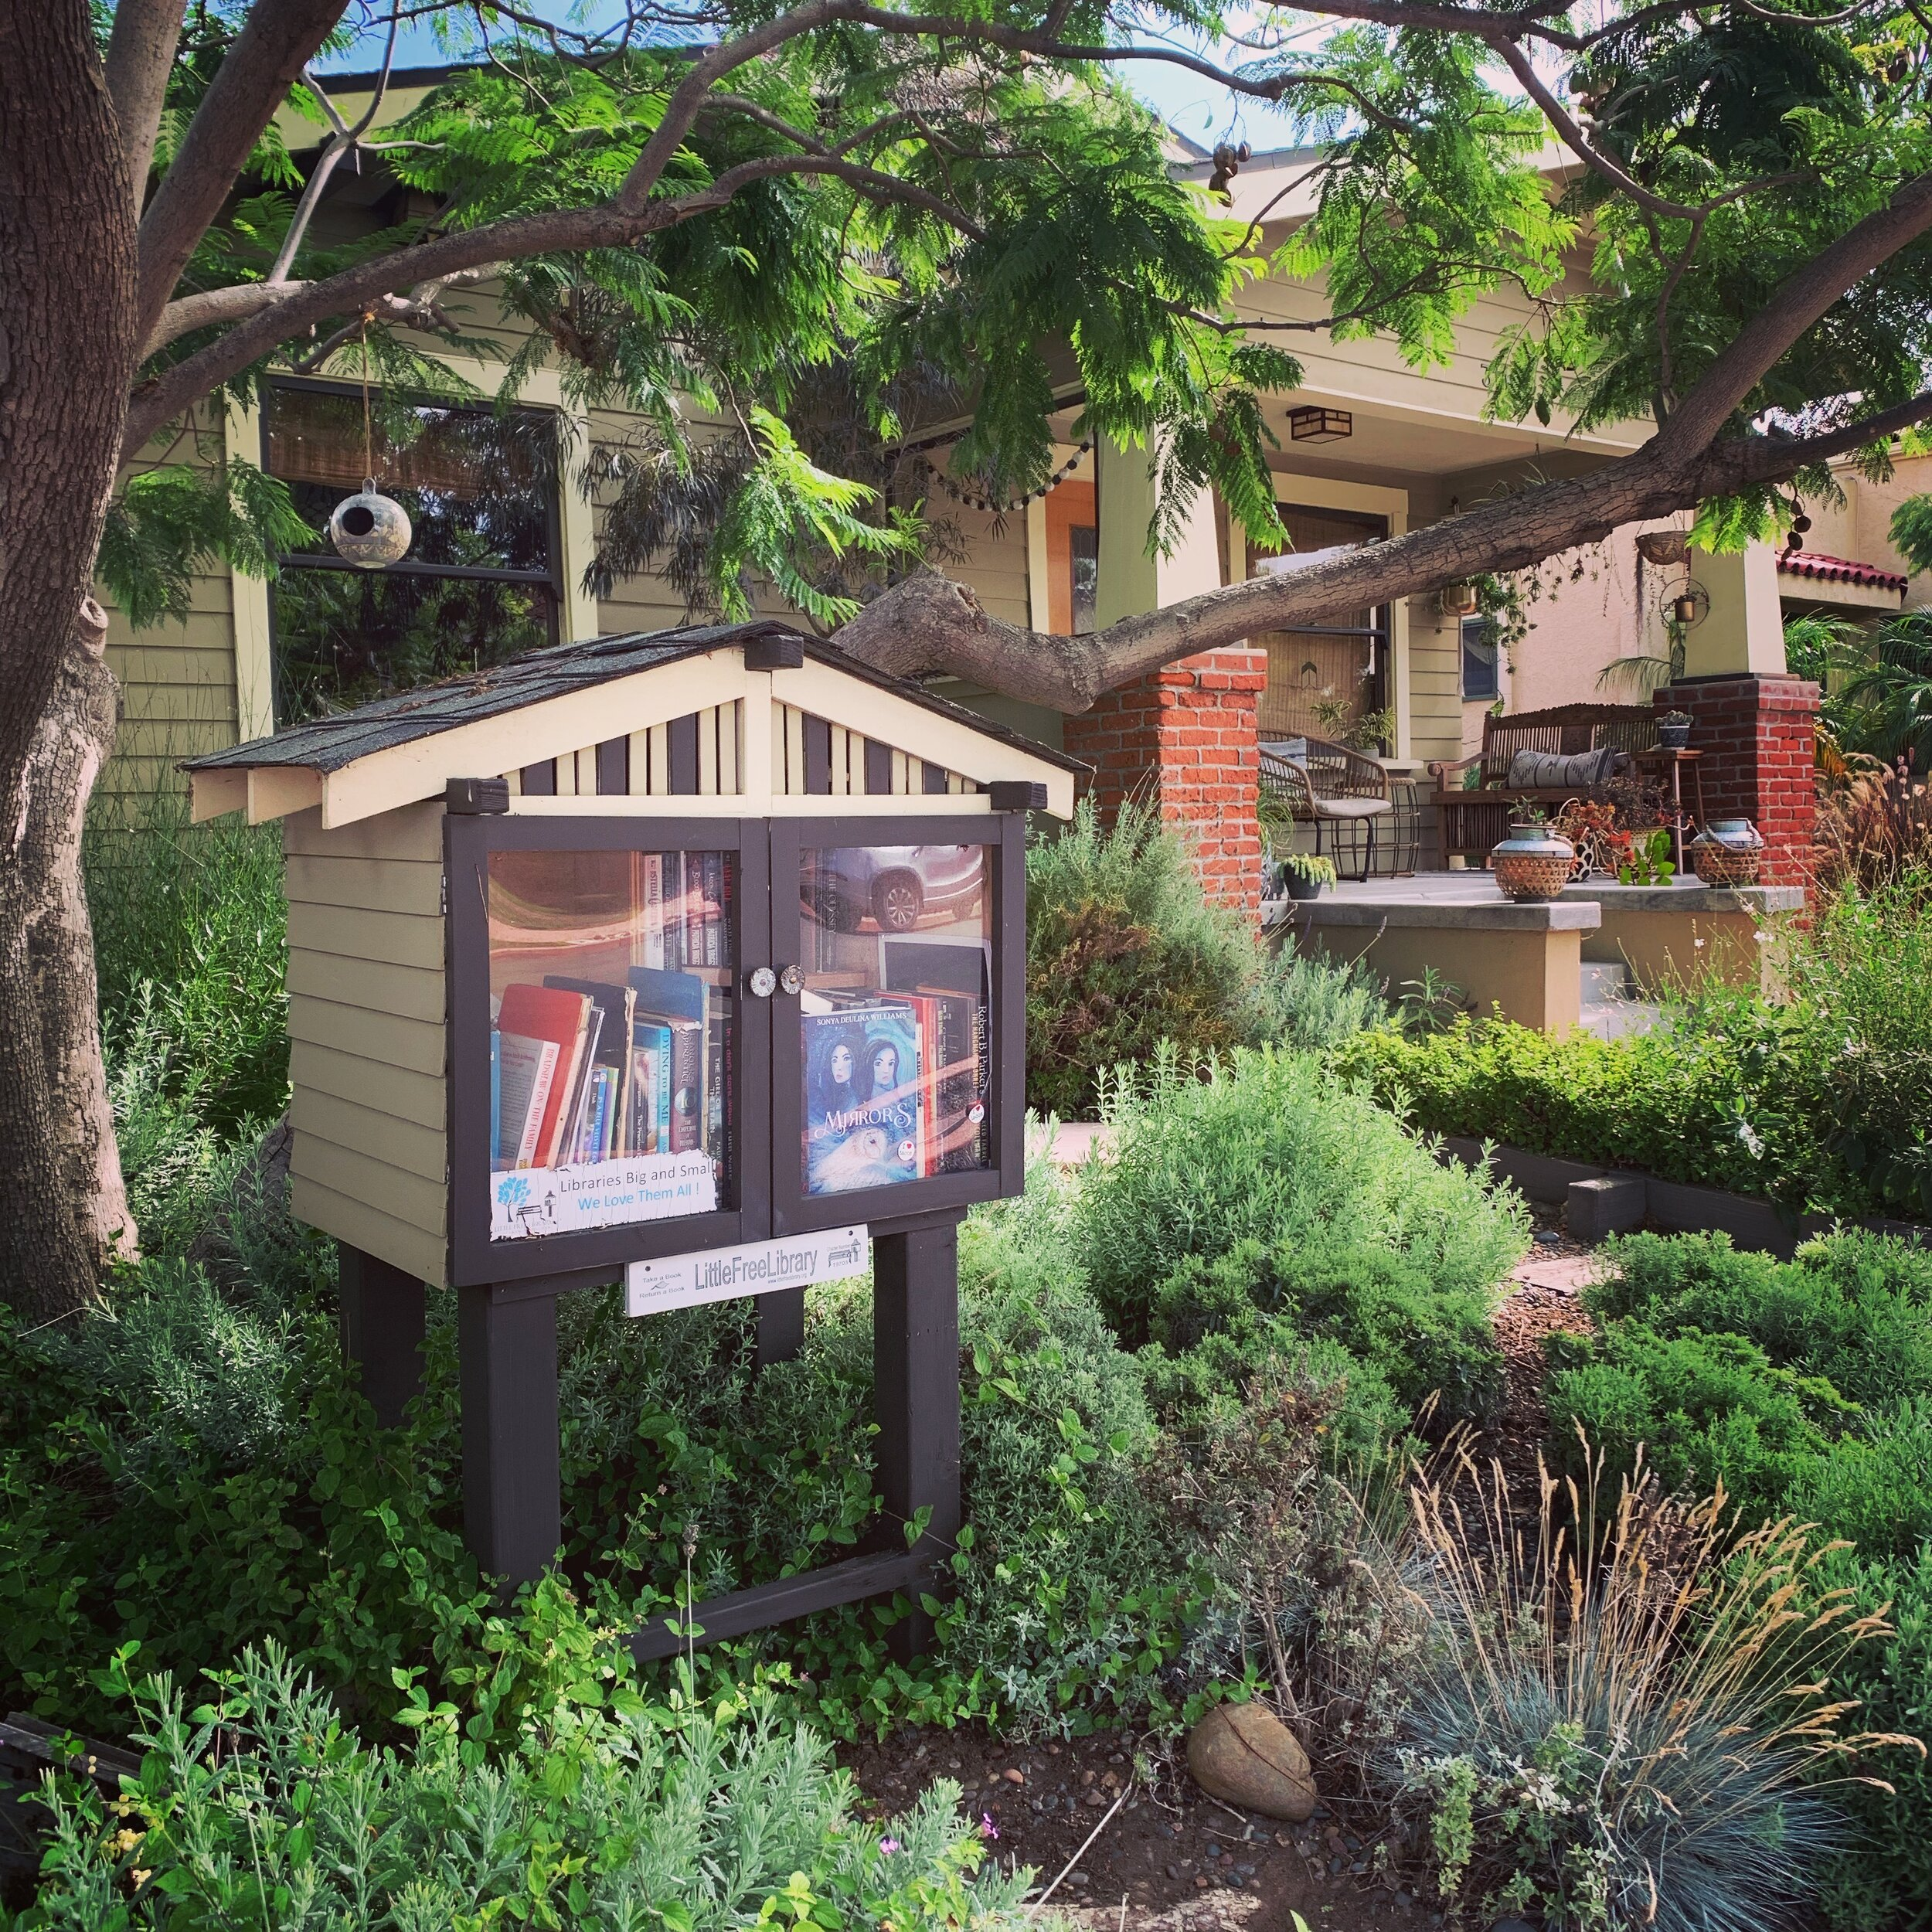 We've been dropping copies of our books in Free Little Libraries around San Diego.